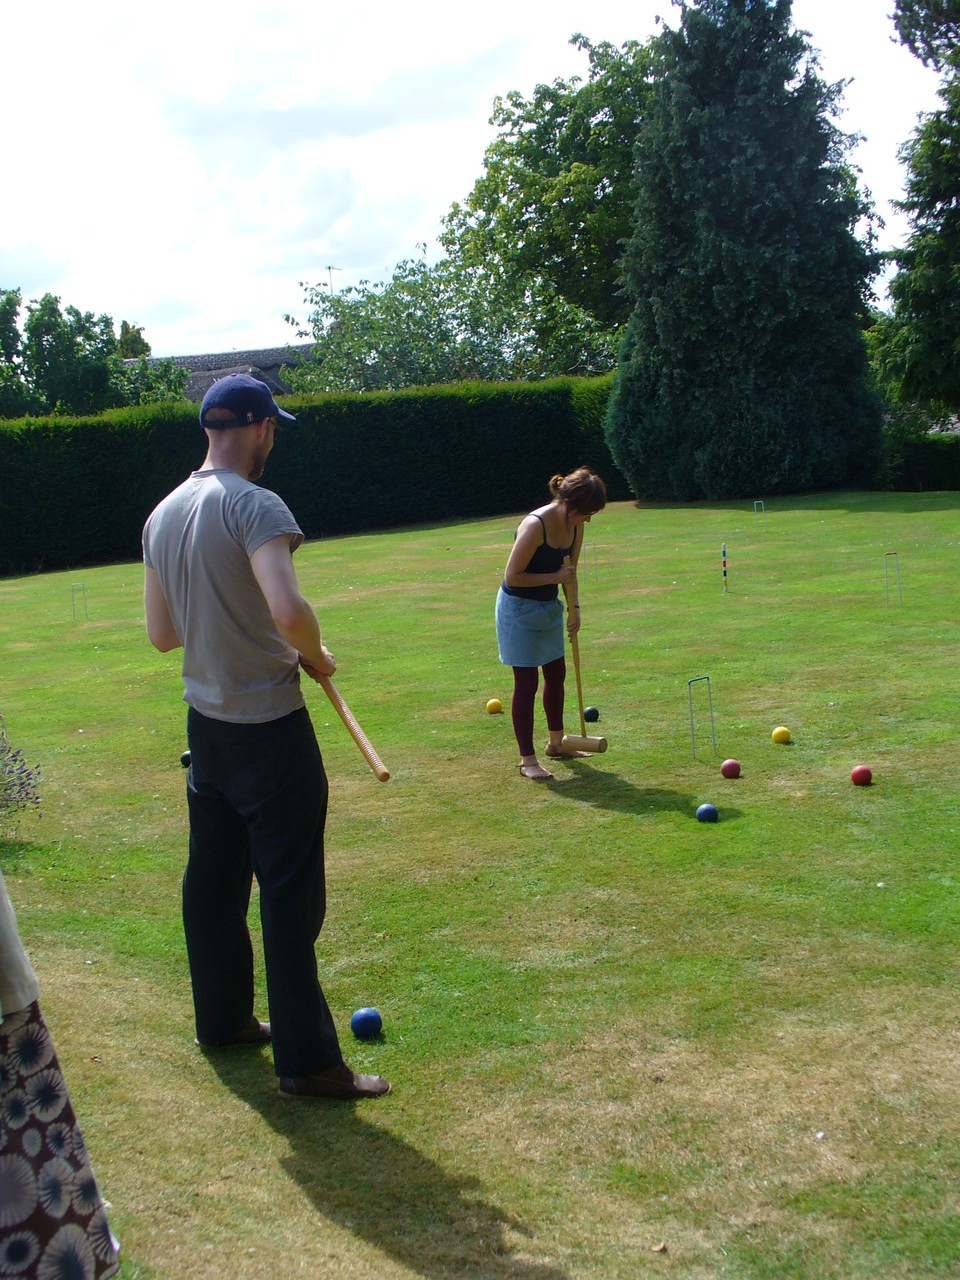 Playing croquet with Helen Stephens and Alexis Deacon - surreal.